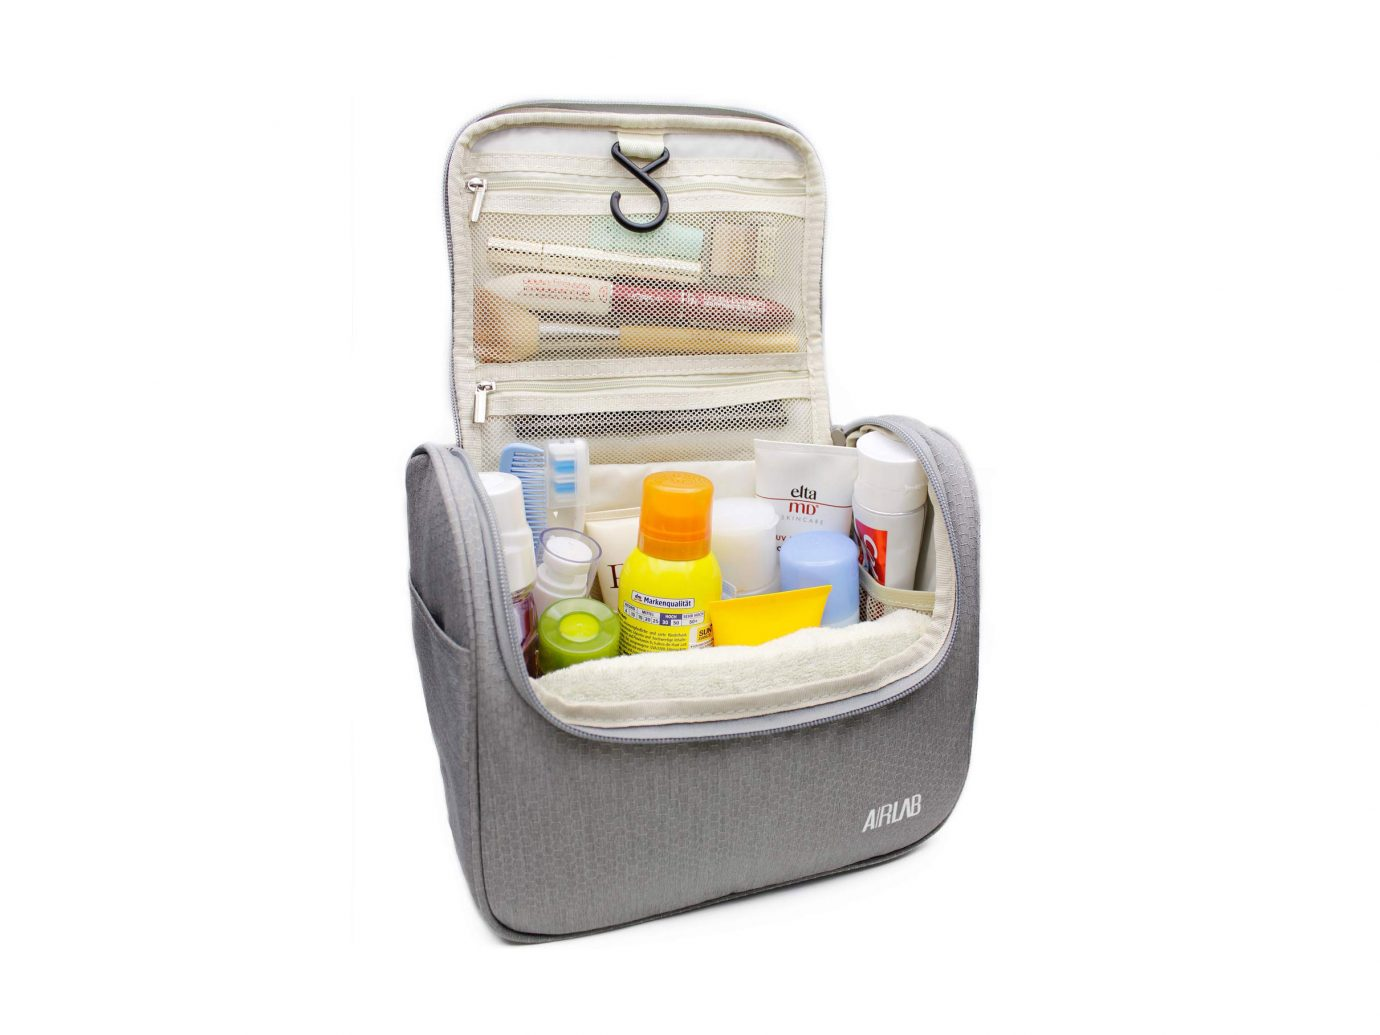 For checked bag: Hanging Toiletry Bag